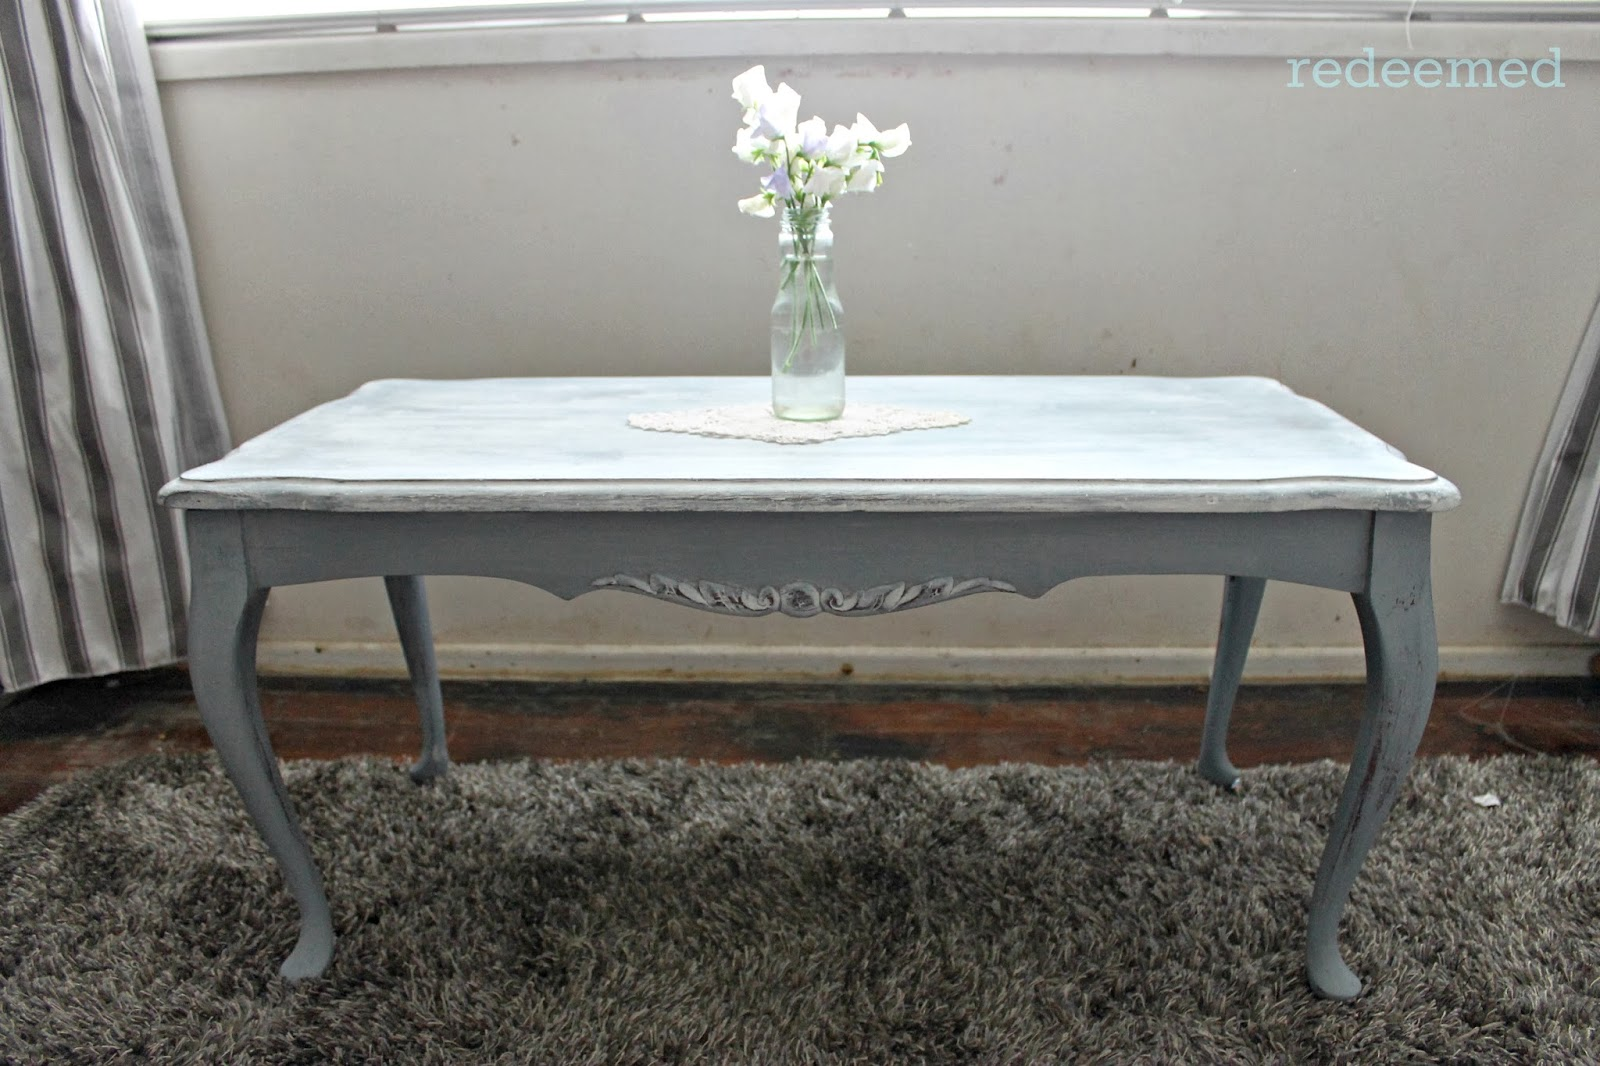 Redeemed unique gifts and homewares french grey coffee table french grey coffee table geotapseo Choice Image